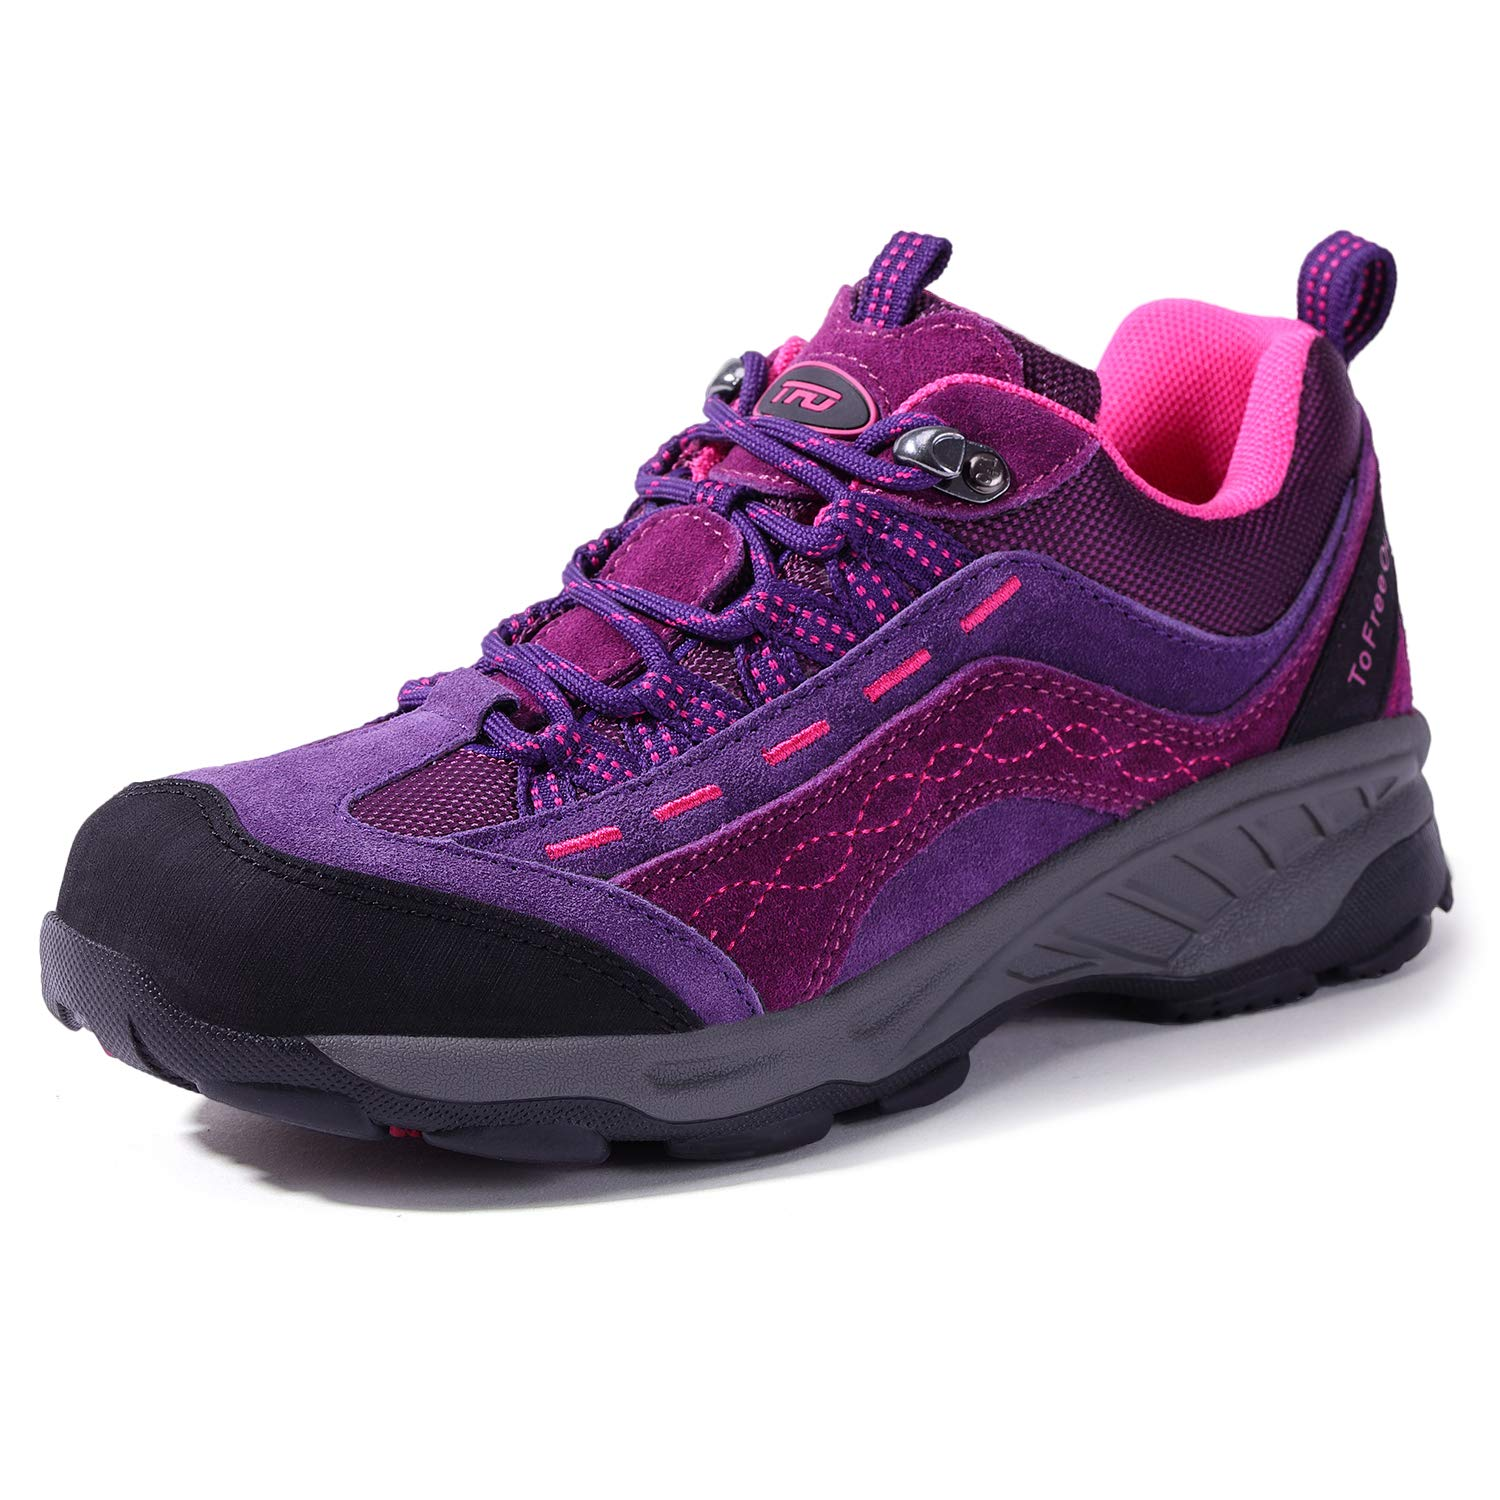 TFO Women's Air Cushion Hiking Shoe Breathable Running Outdoor Sports Trail Trekking Sneaker (7.5 M US, Purple/Rose) by TFO